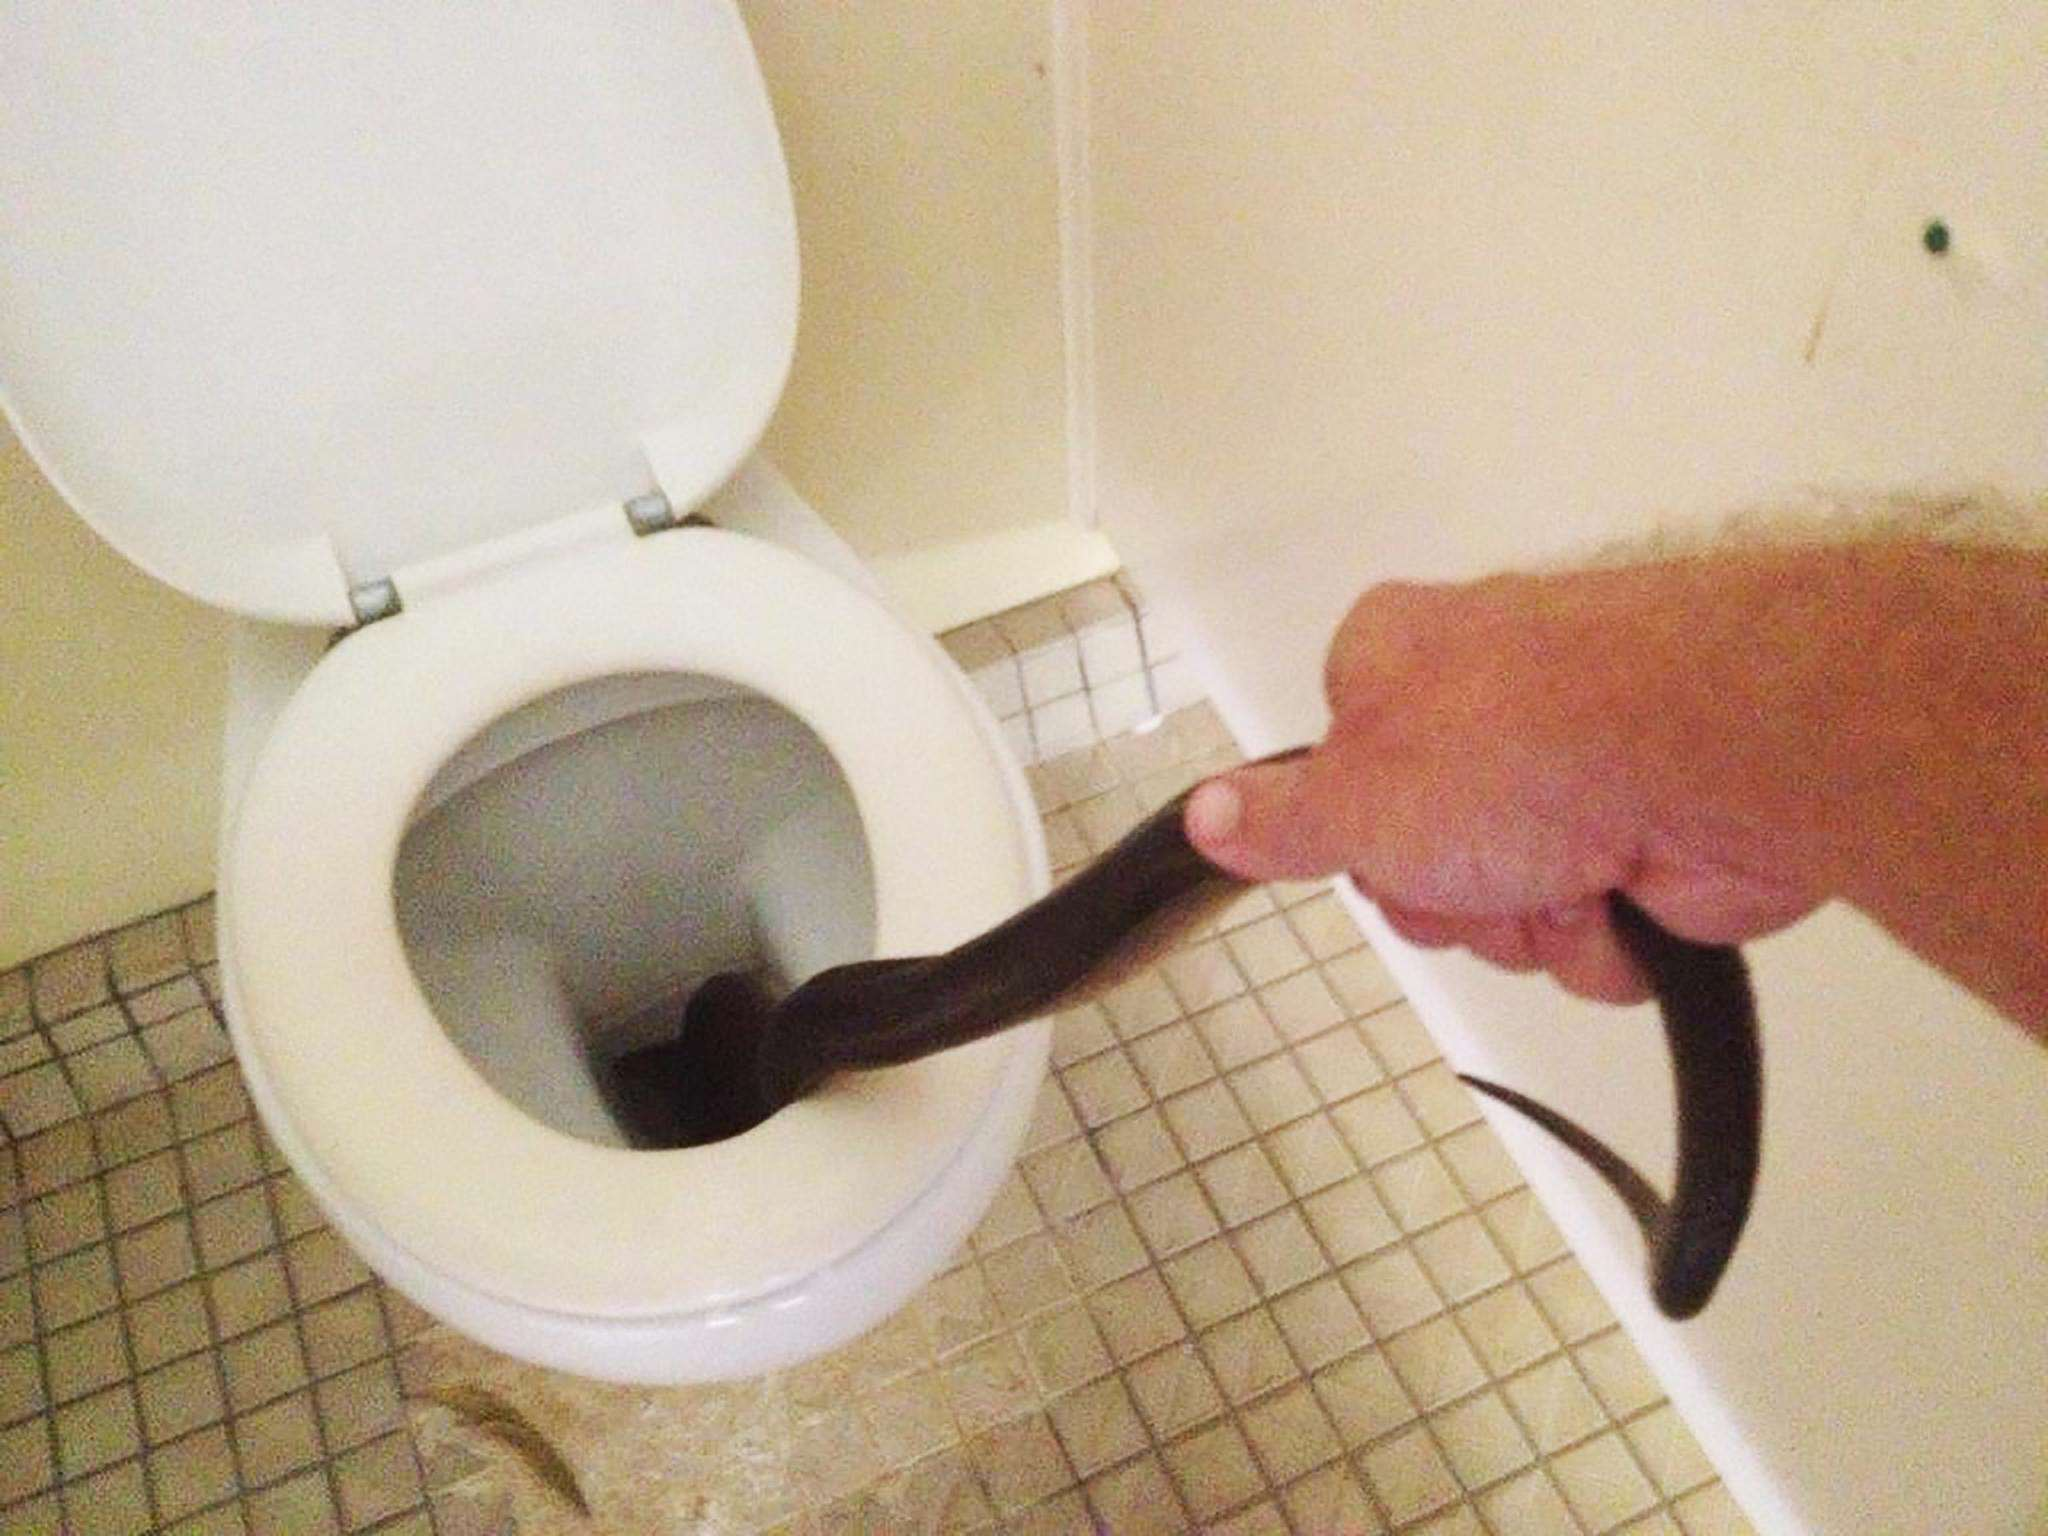 snake2 NOPE: These Photos Will Put You Off Using Toilet Forever